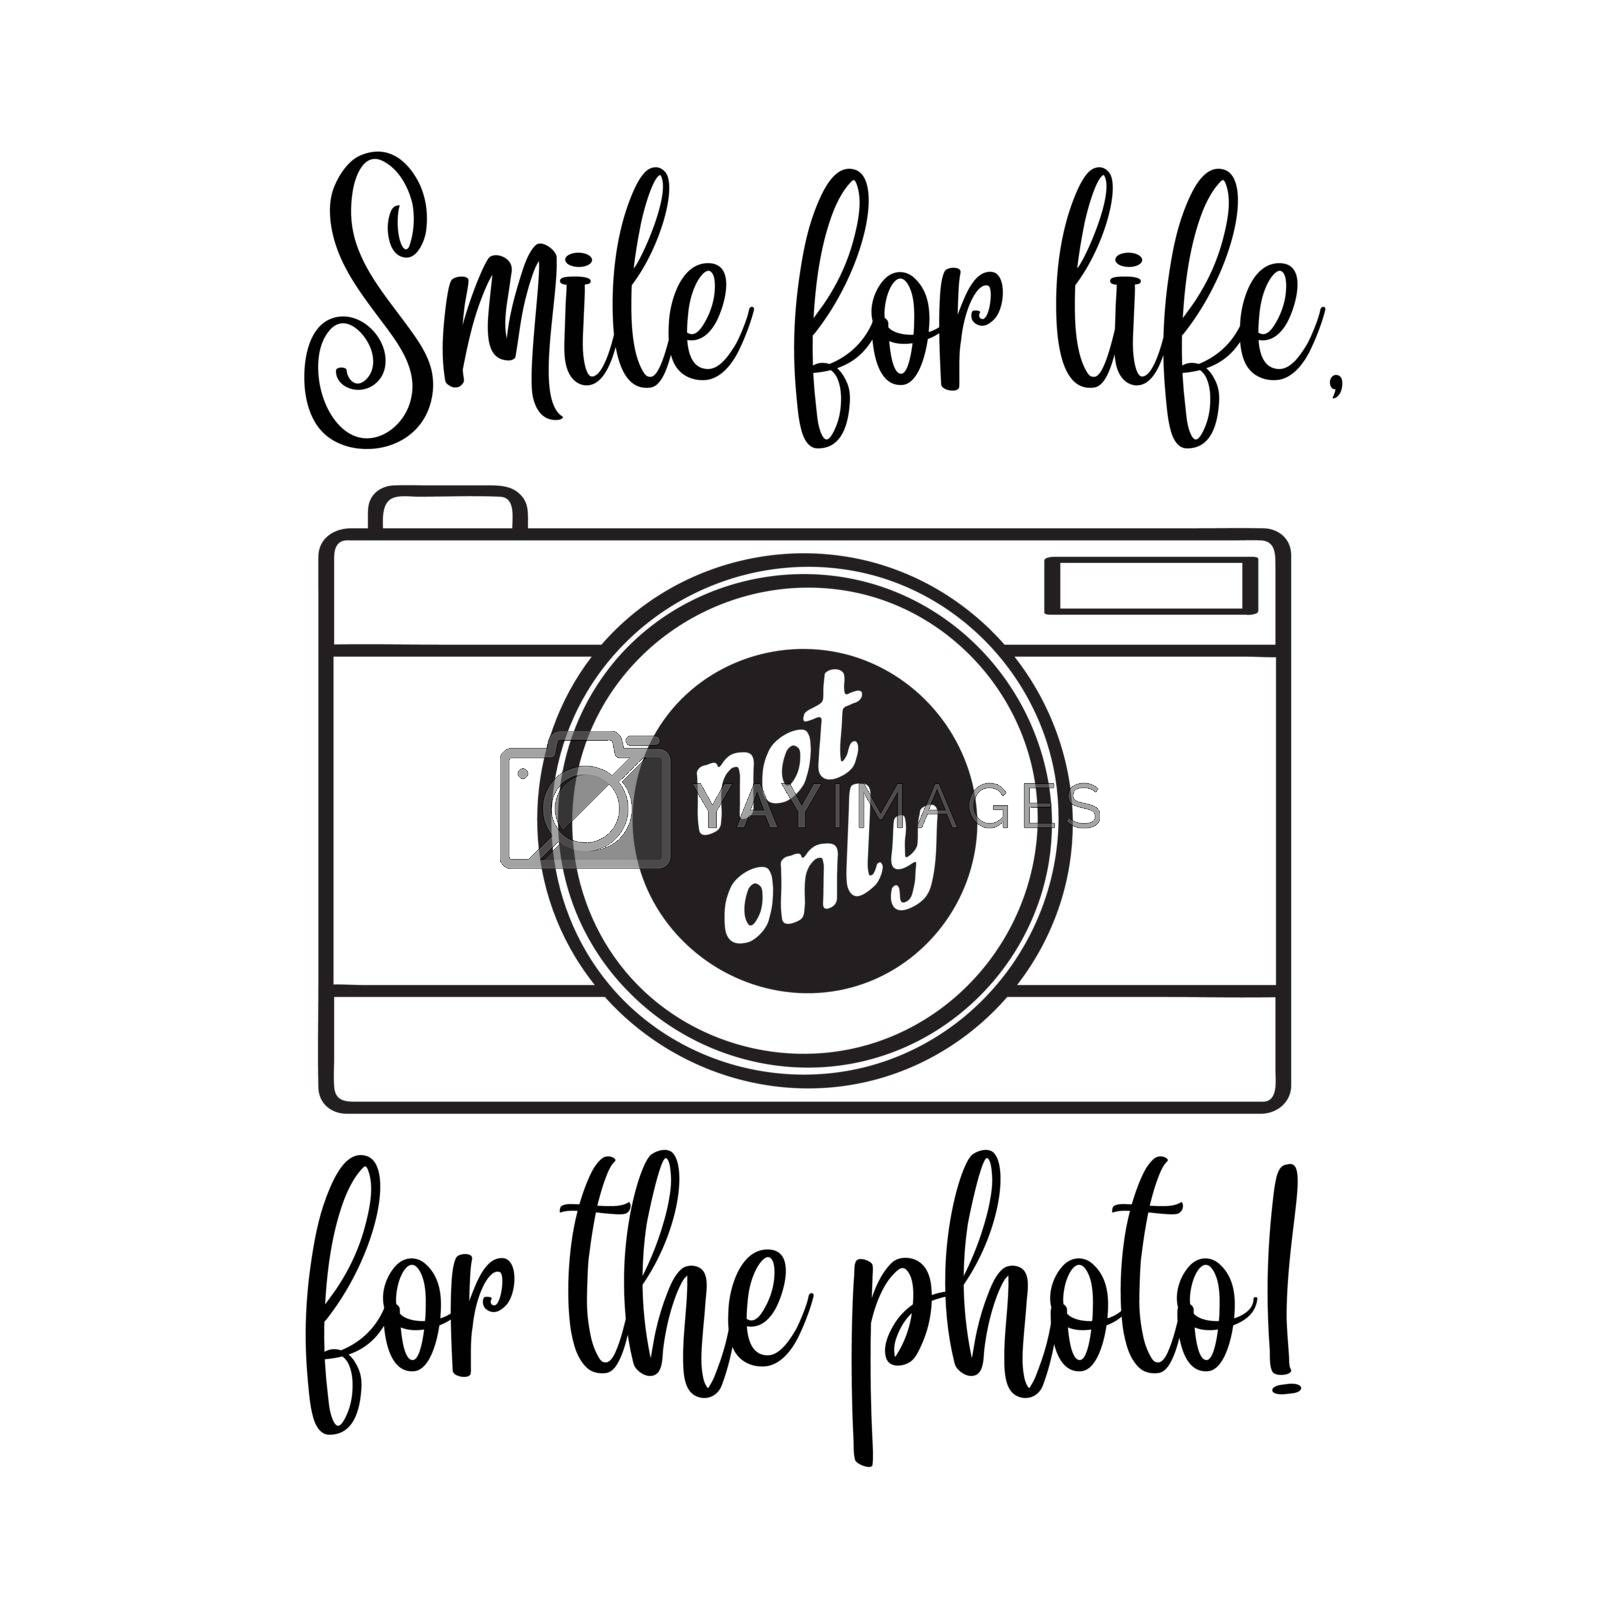 """""""Smile for life, not only for the photo""""- motivational quote"""